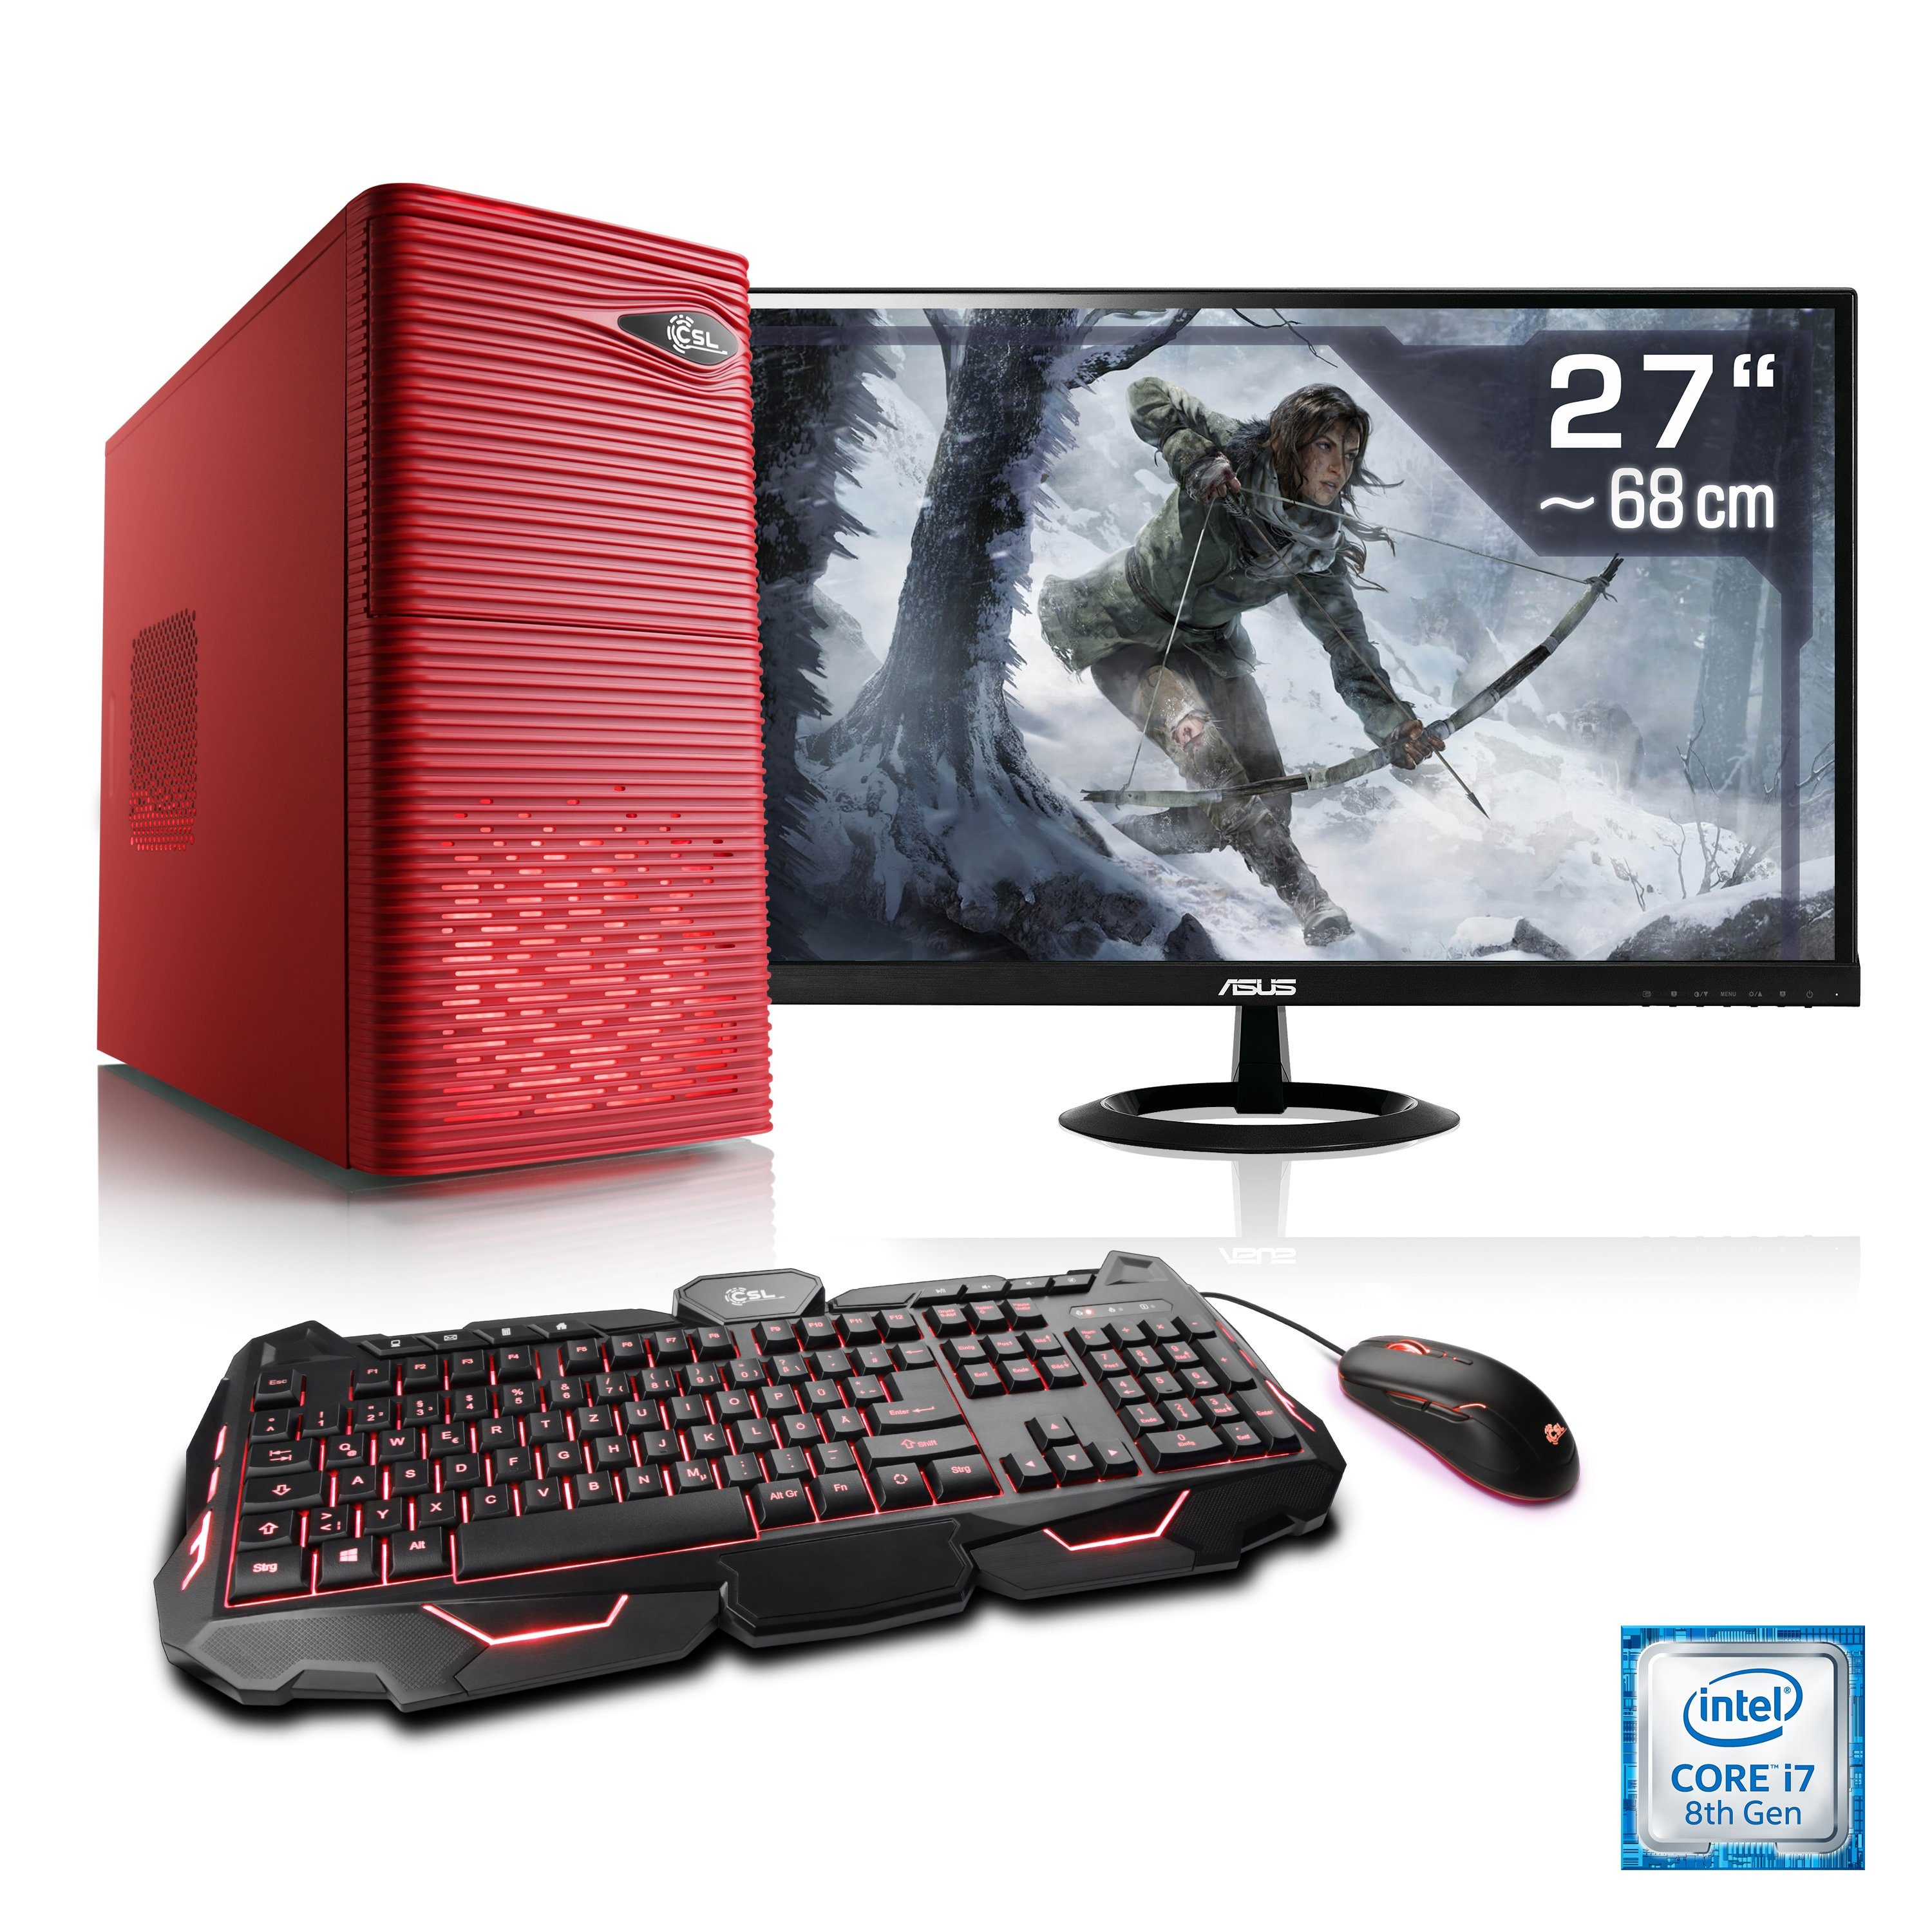 "CSL Gaming PC Set i7-8700 | GTX 1060 | 16GB DDR4 | SSD | 27"" TFT »Speed T9585 Windows 10 Home«"